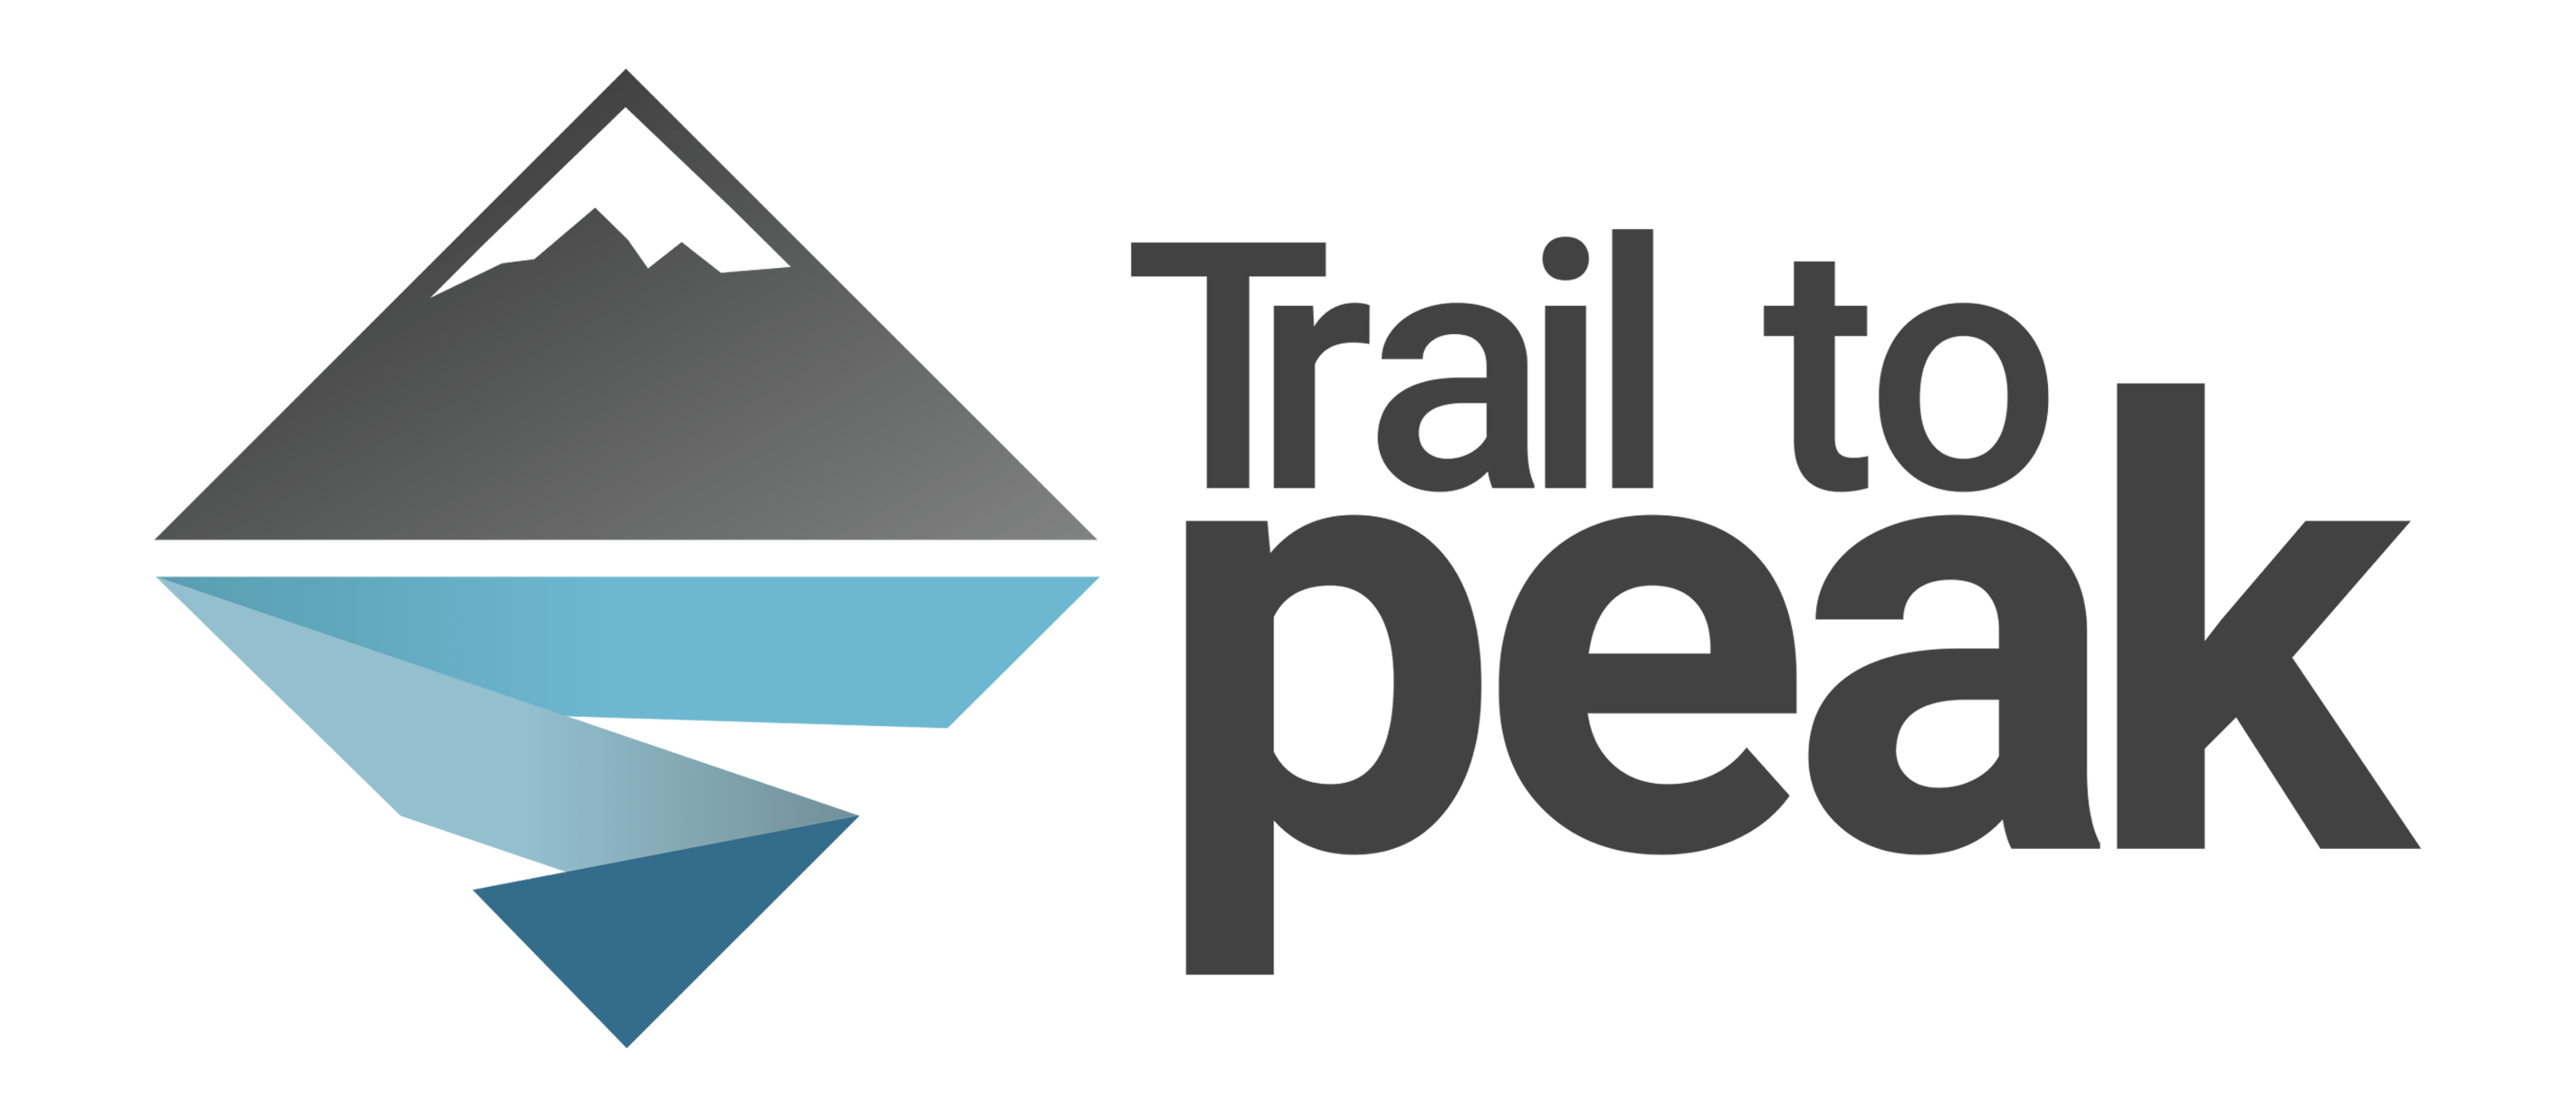 Trail to Peak